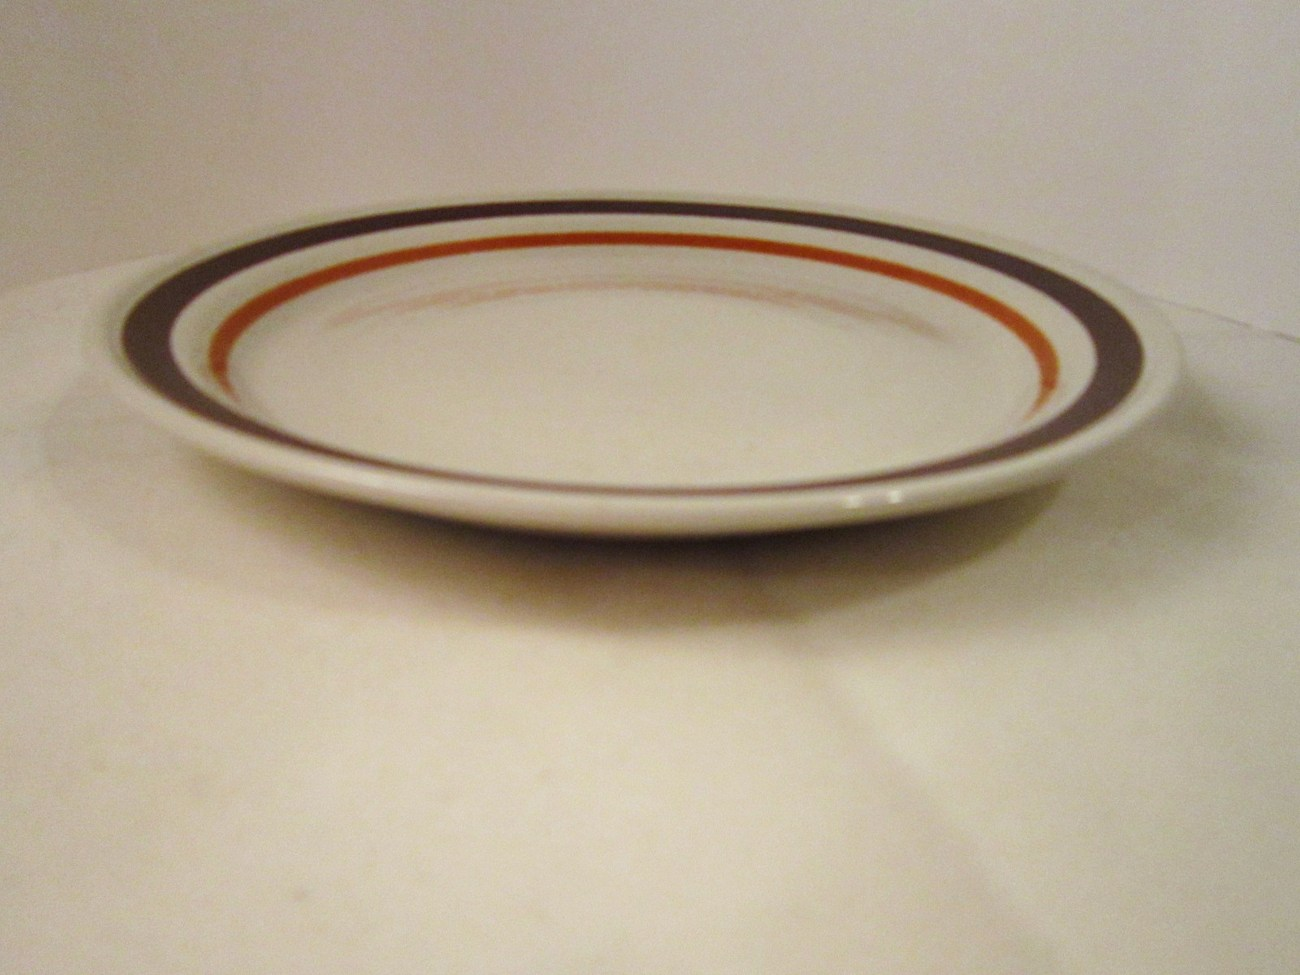 Encompass Stoneware Dessert Plate or Salad Plate, Oven to Table